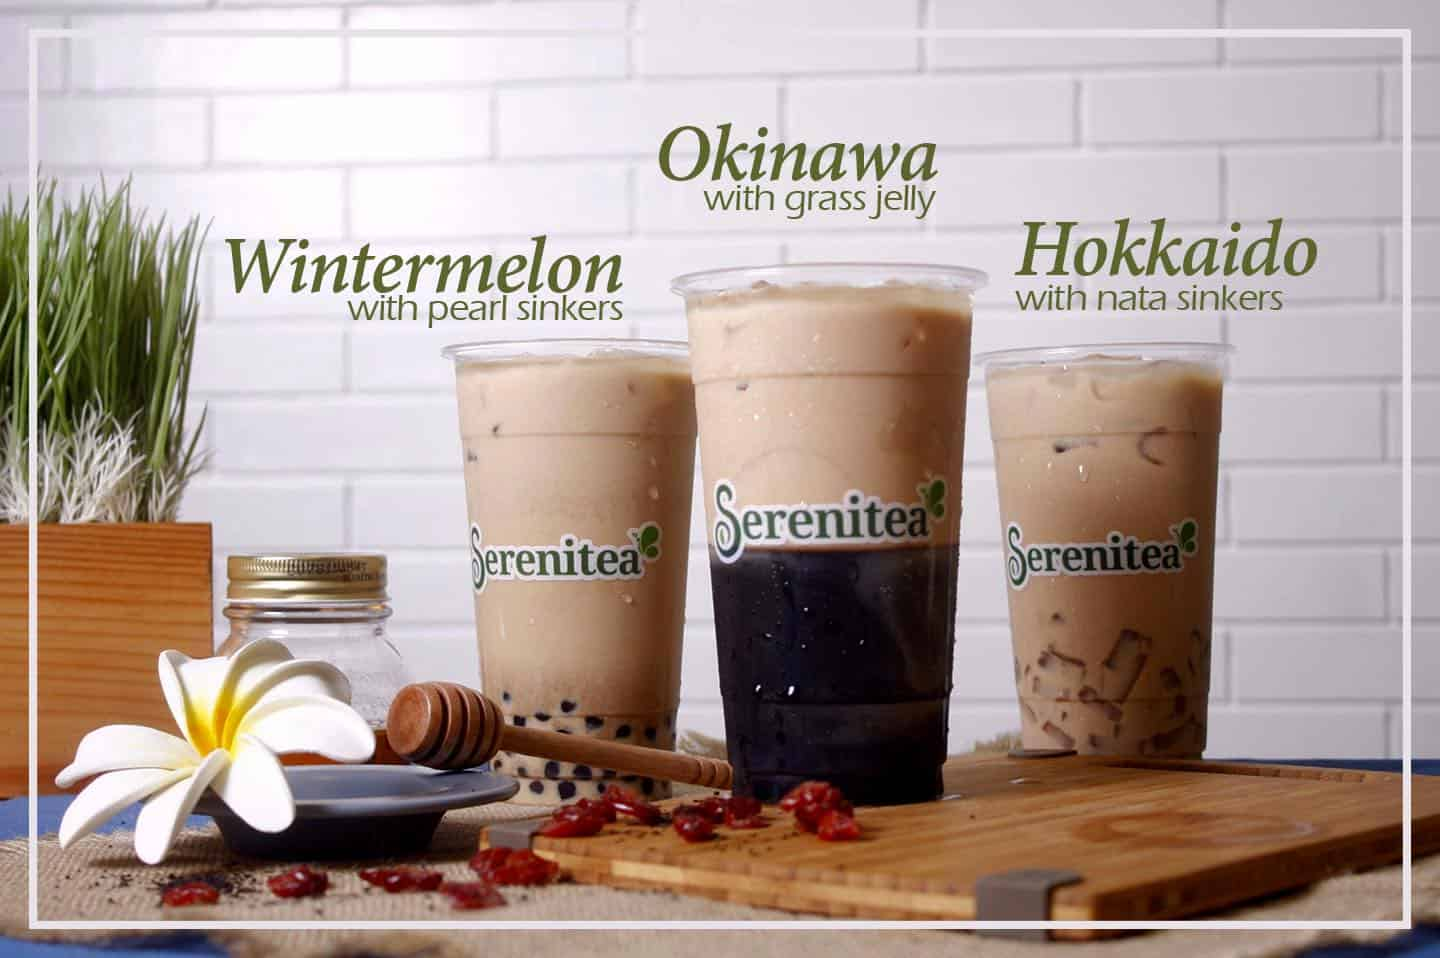 4 Serenitea milk tea cebu 2